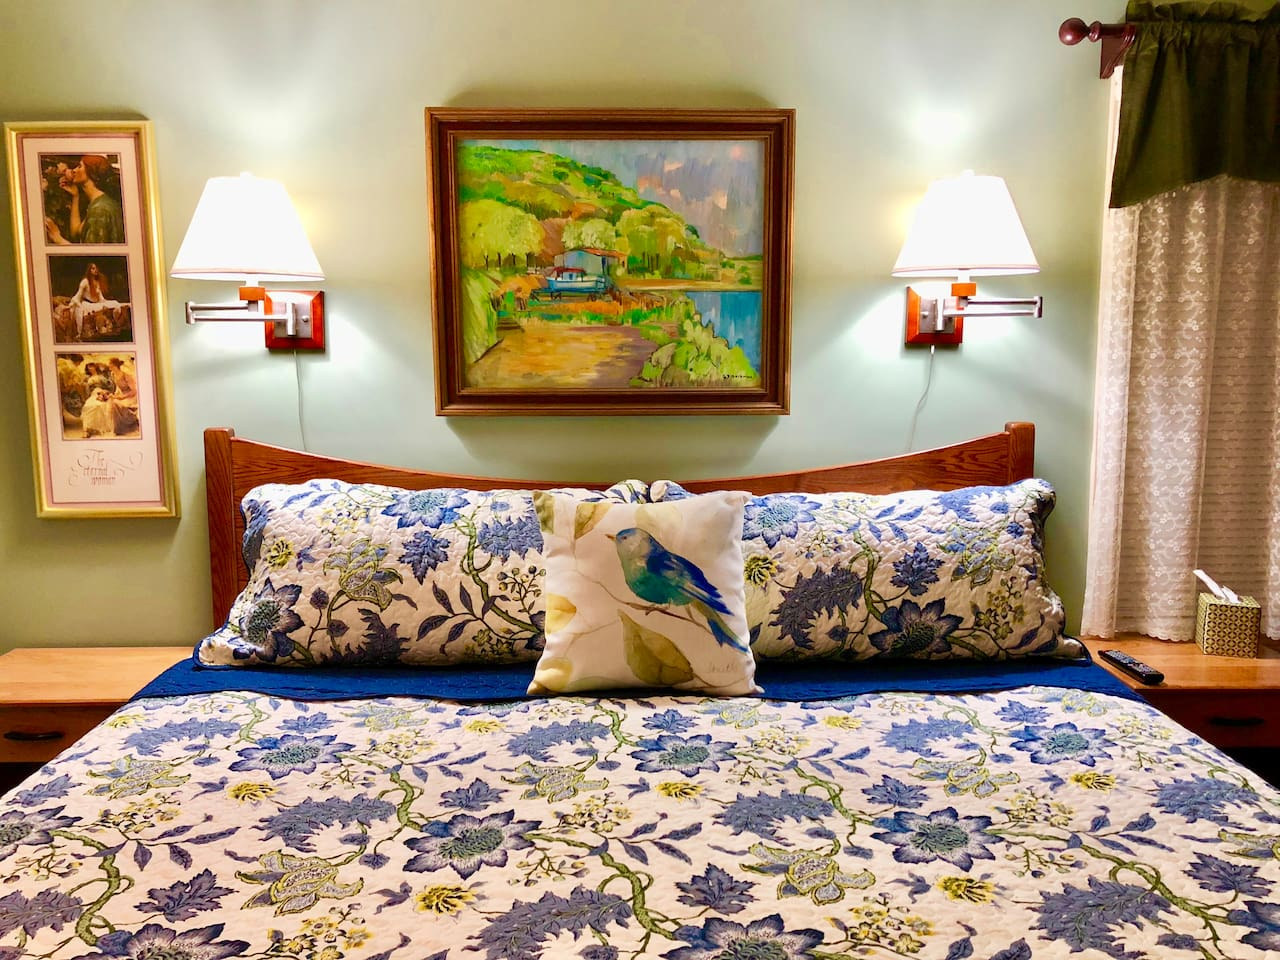 King size bed in private bed room. Our guest tell us this is the most comfortable bed they have ever slept in.